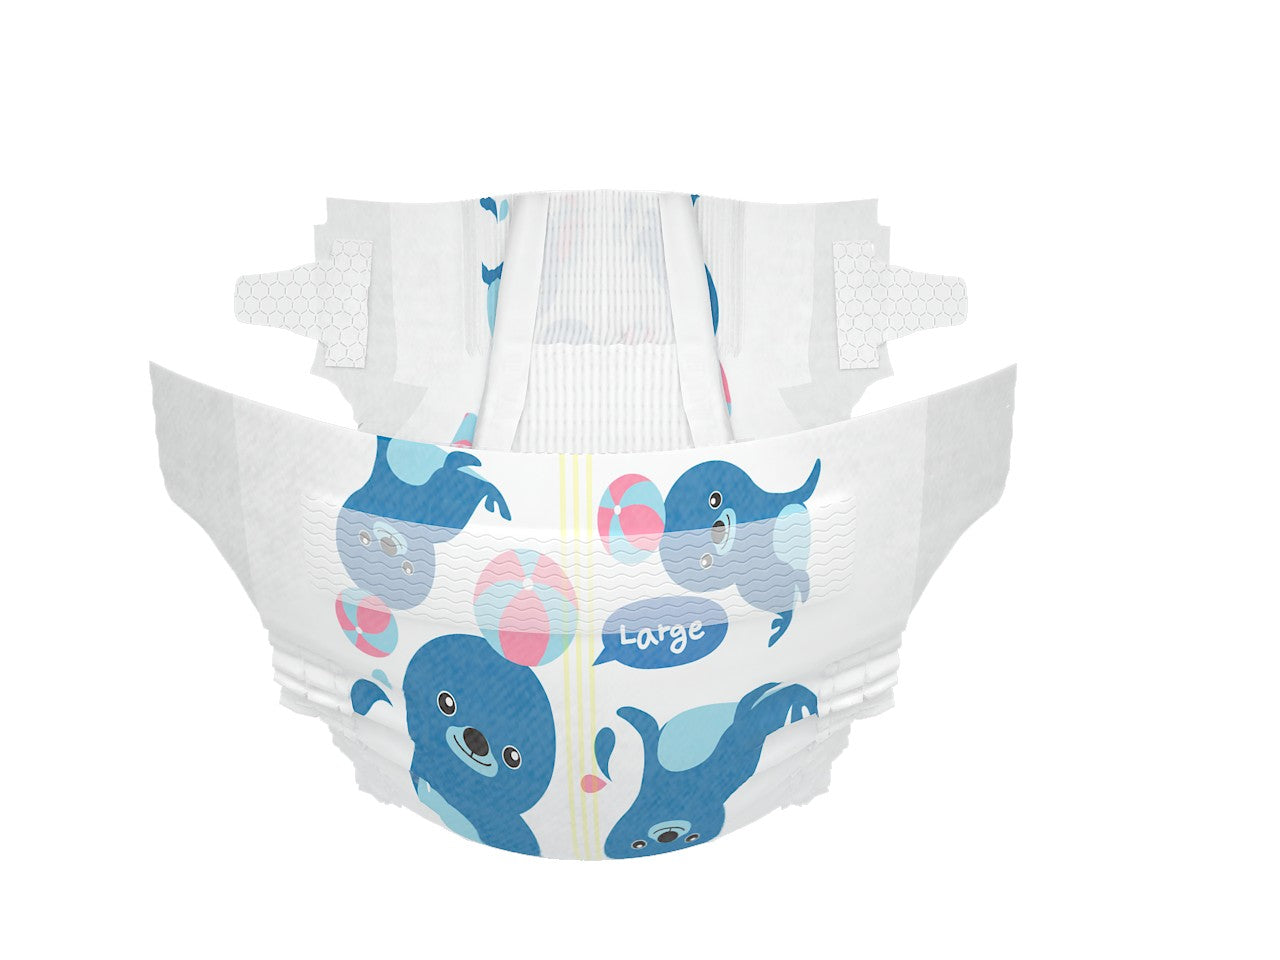 K-Mom Dual Story diaper (Large) - Mighty Baby PH